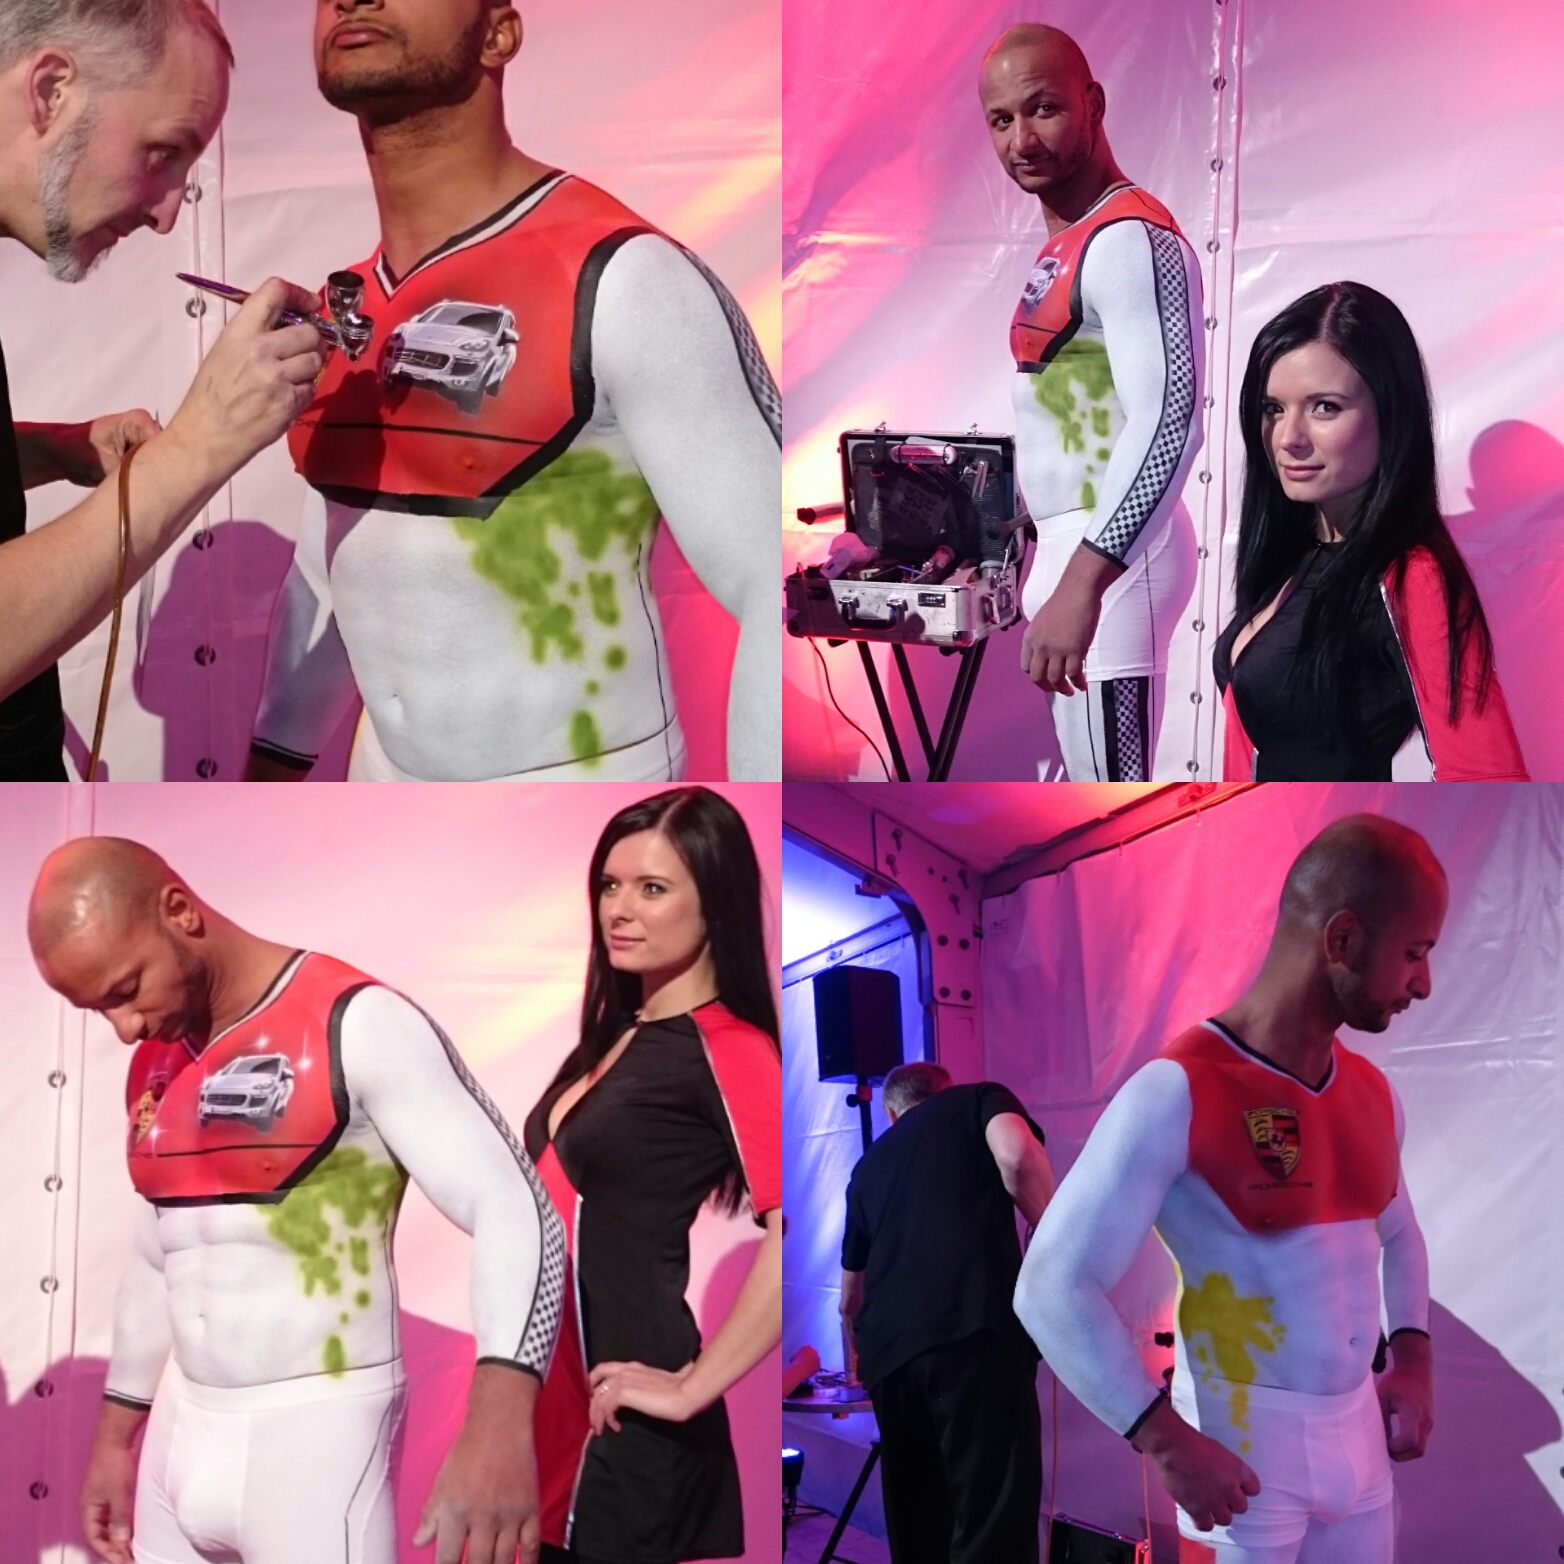 airbrush bodypainting model leipzig sachsen deutschland germany promotion host hostess fullservice agentur bensch media